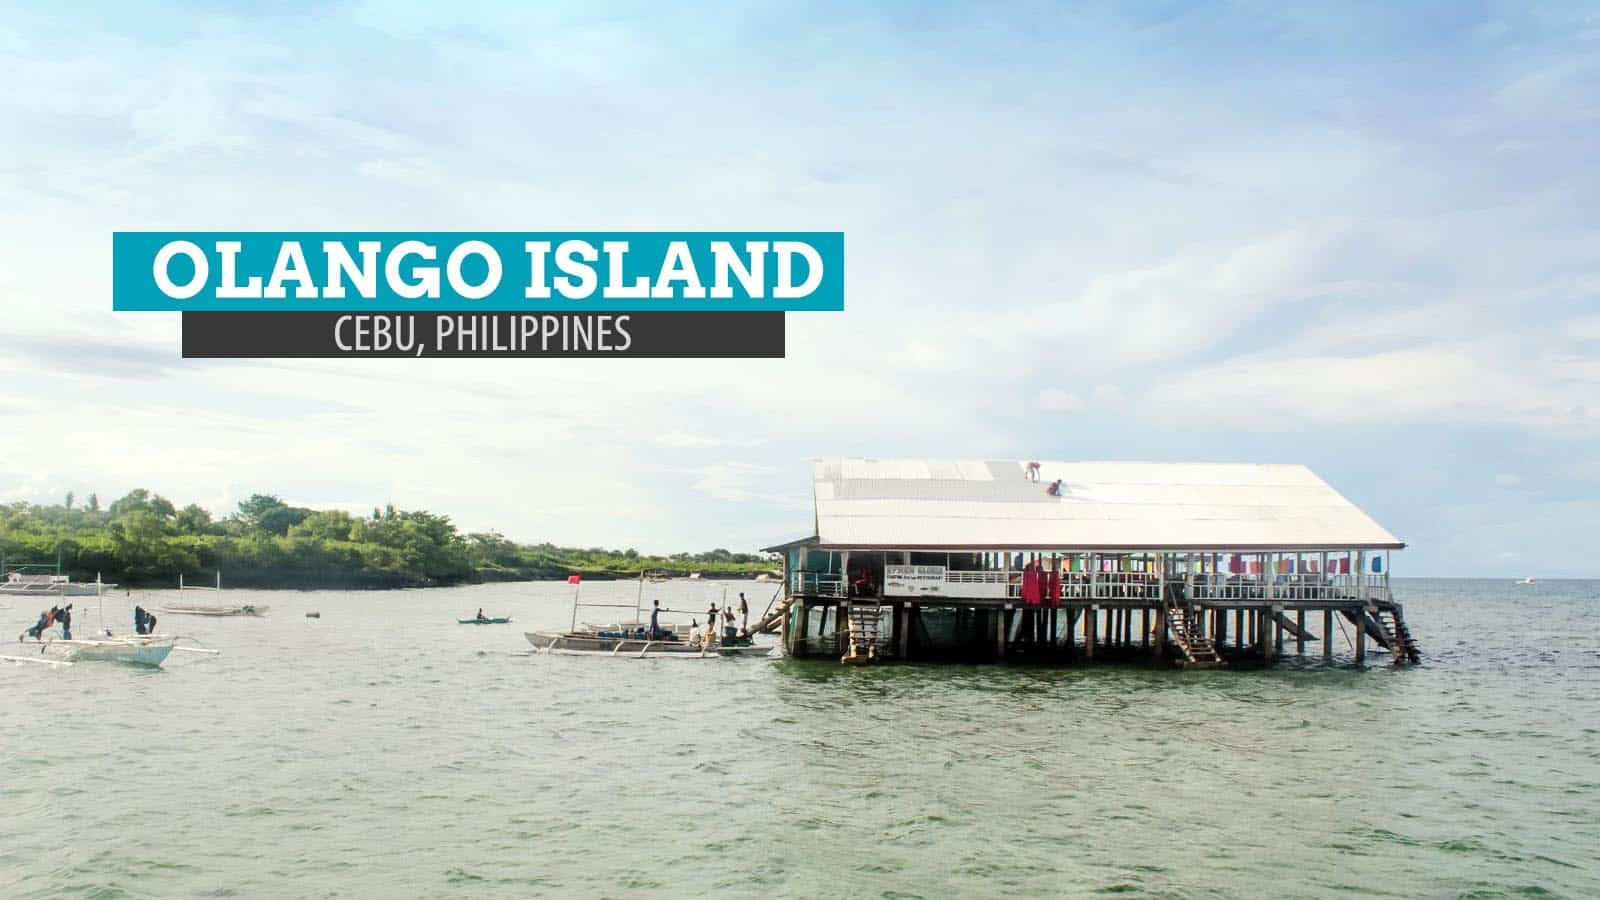 Cao Oy Olango Island Seafood And Stilts In Cebu Philippines The Poor Traveler Blog